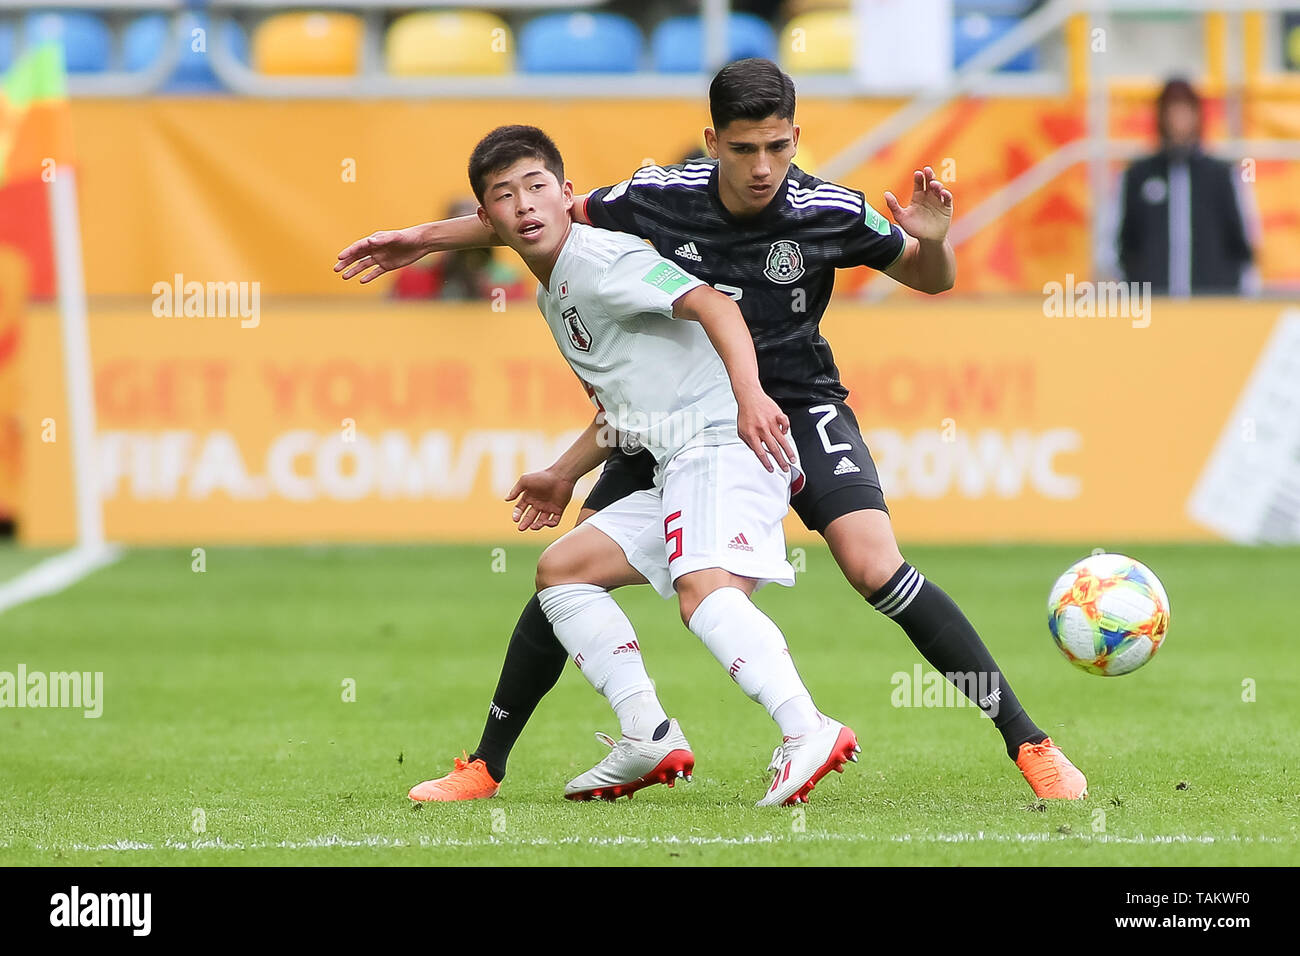 Gdynia Stadium, Gdynia, Poland - 26th May, 2019: Yukinari Sugawara (L) from Japan and Kevin Alvarez (R) from Mexico are seen in action during FIFA U-20 World Cup match between Mexico and Japan (GROUP B) in Gdynia. (Final score; Mexico 0:3 Japan) - Stock Image